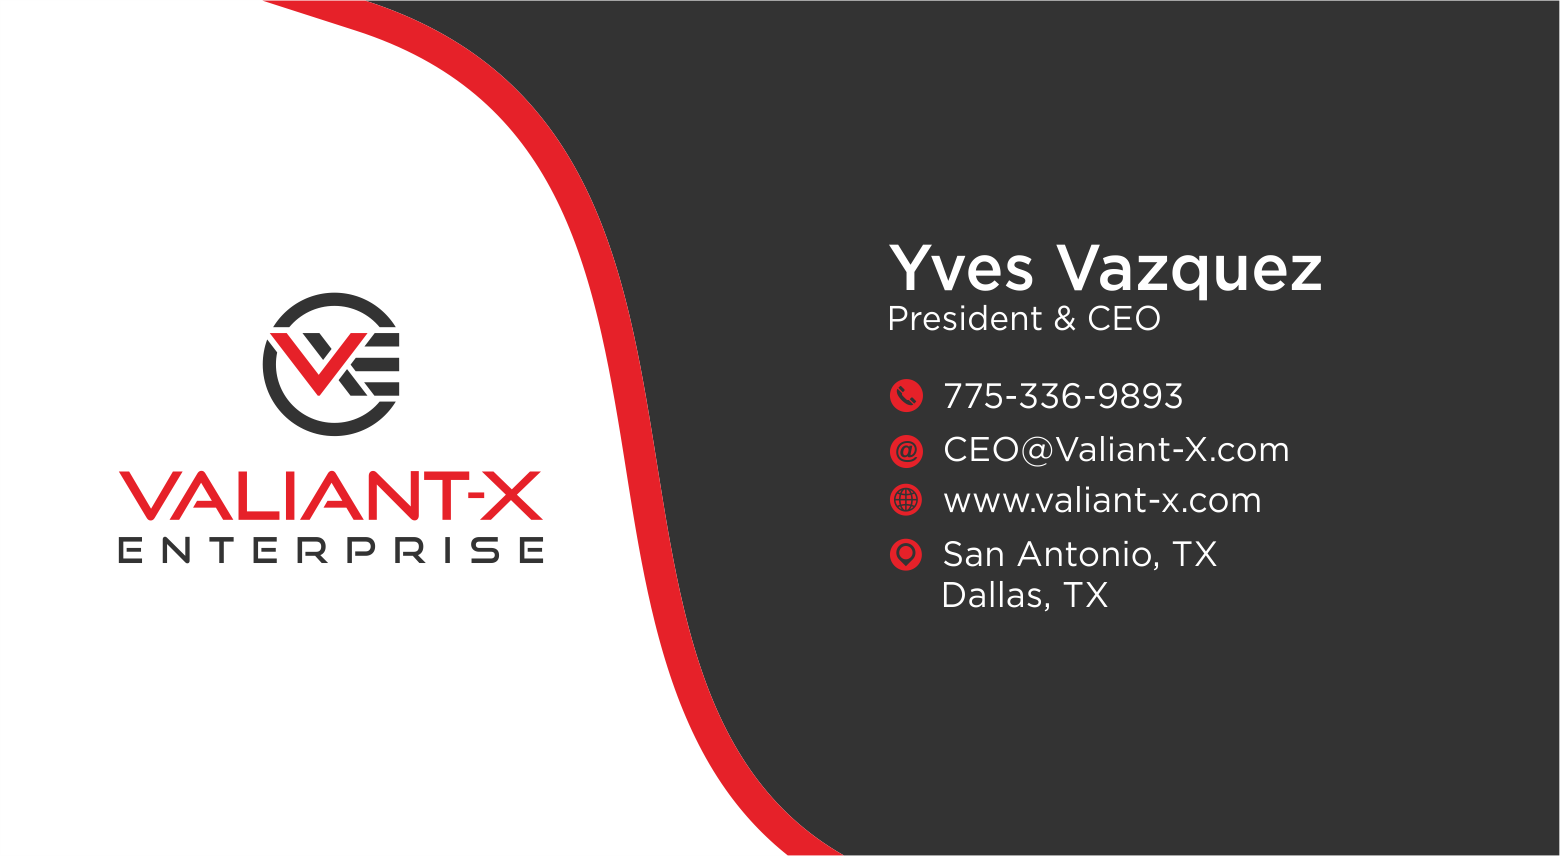 VXE Business Card and Letterhead Documents